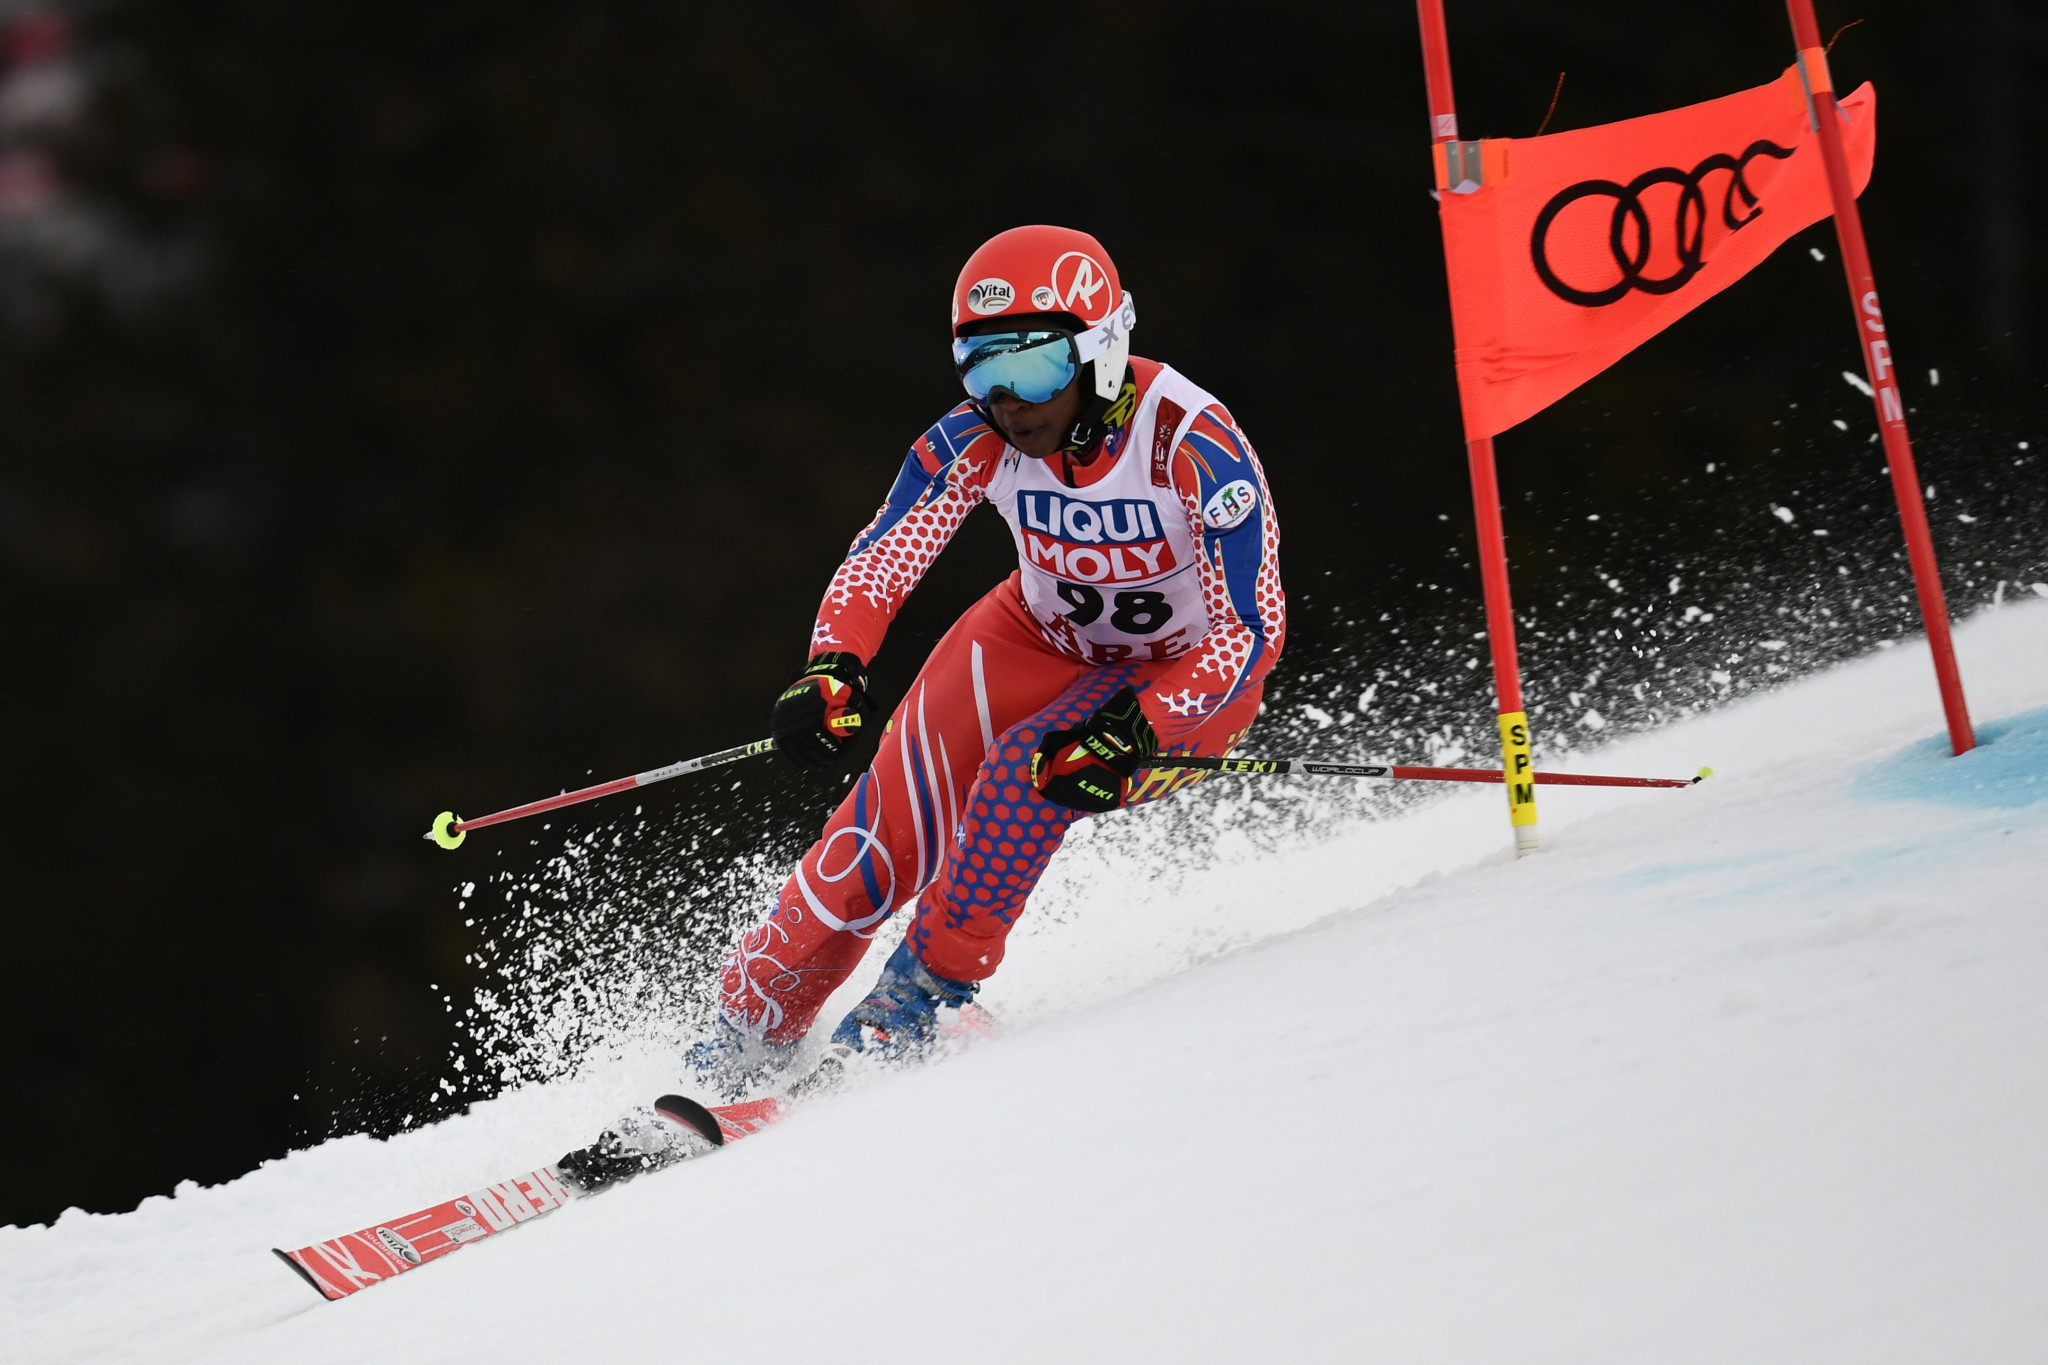 Celine Marti competed in the women's slalom event at February's FIS Alpine World Ski Championships in Åre in Sweden, finishing 52nd ©Getty Images